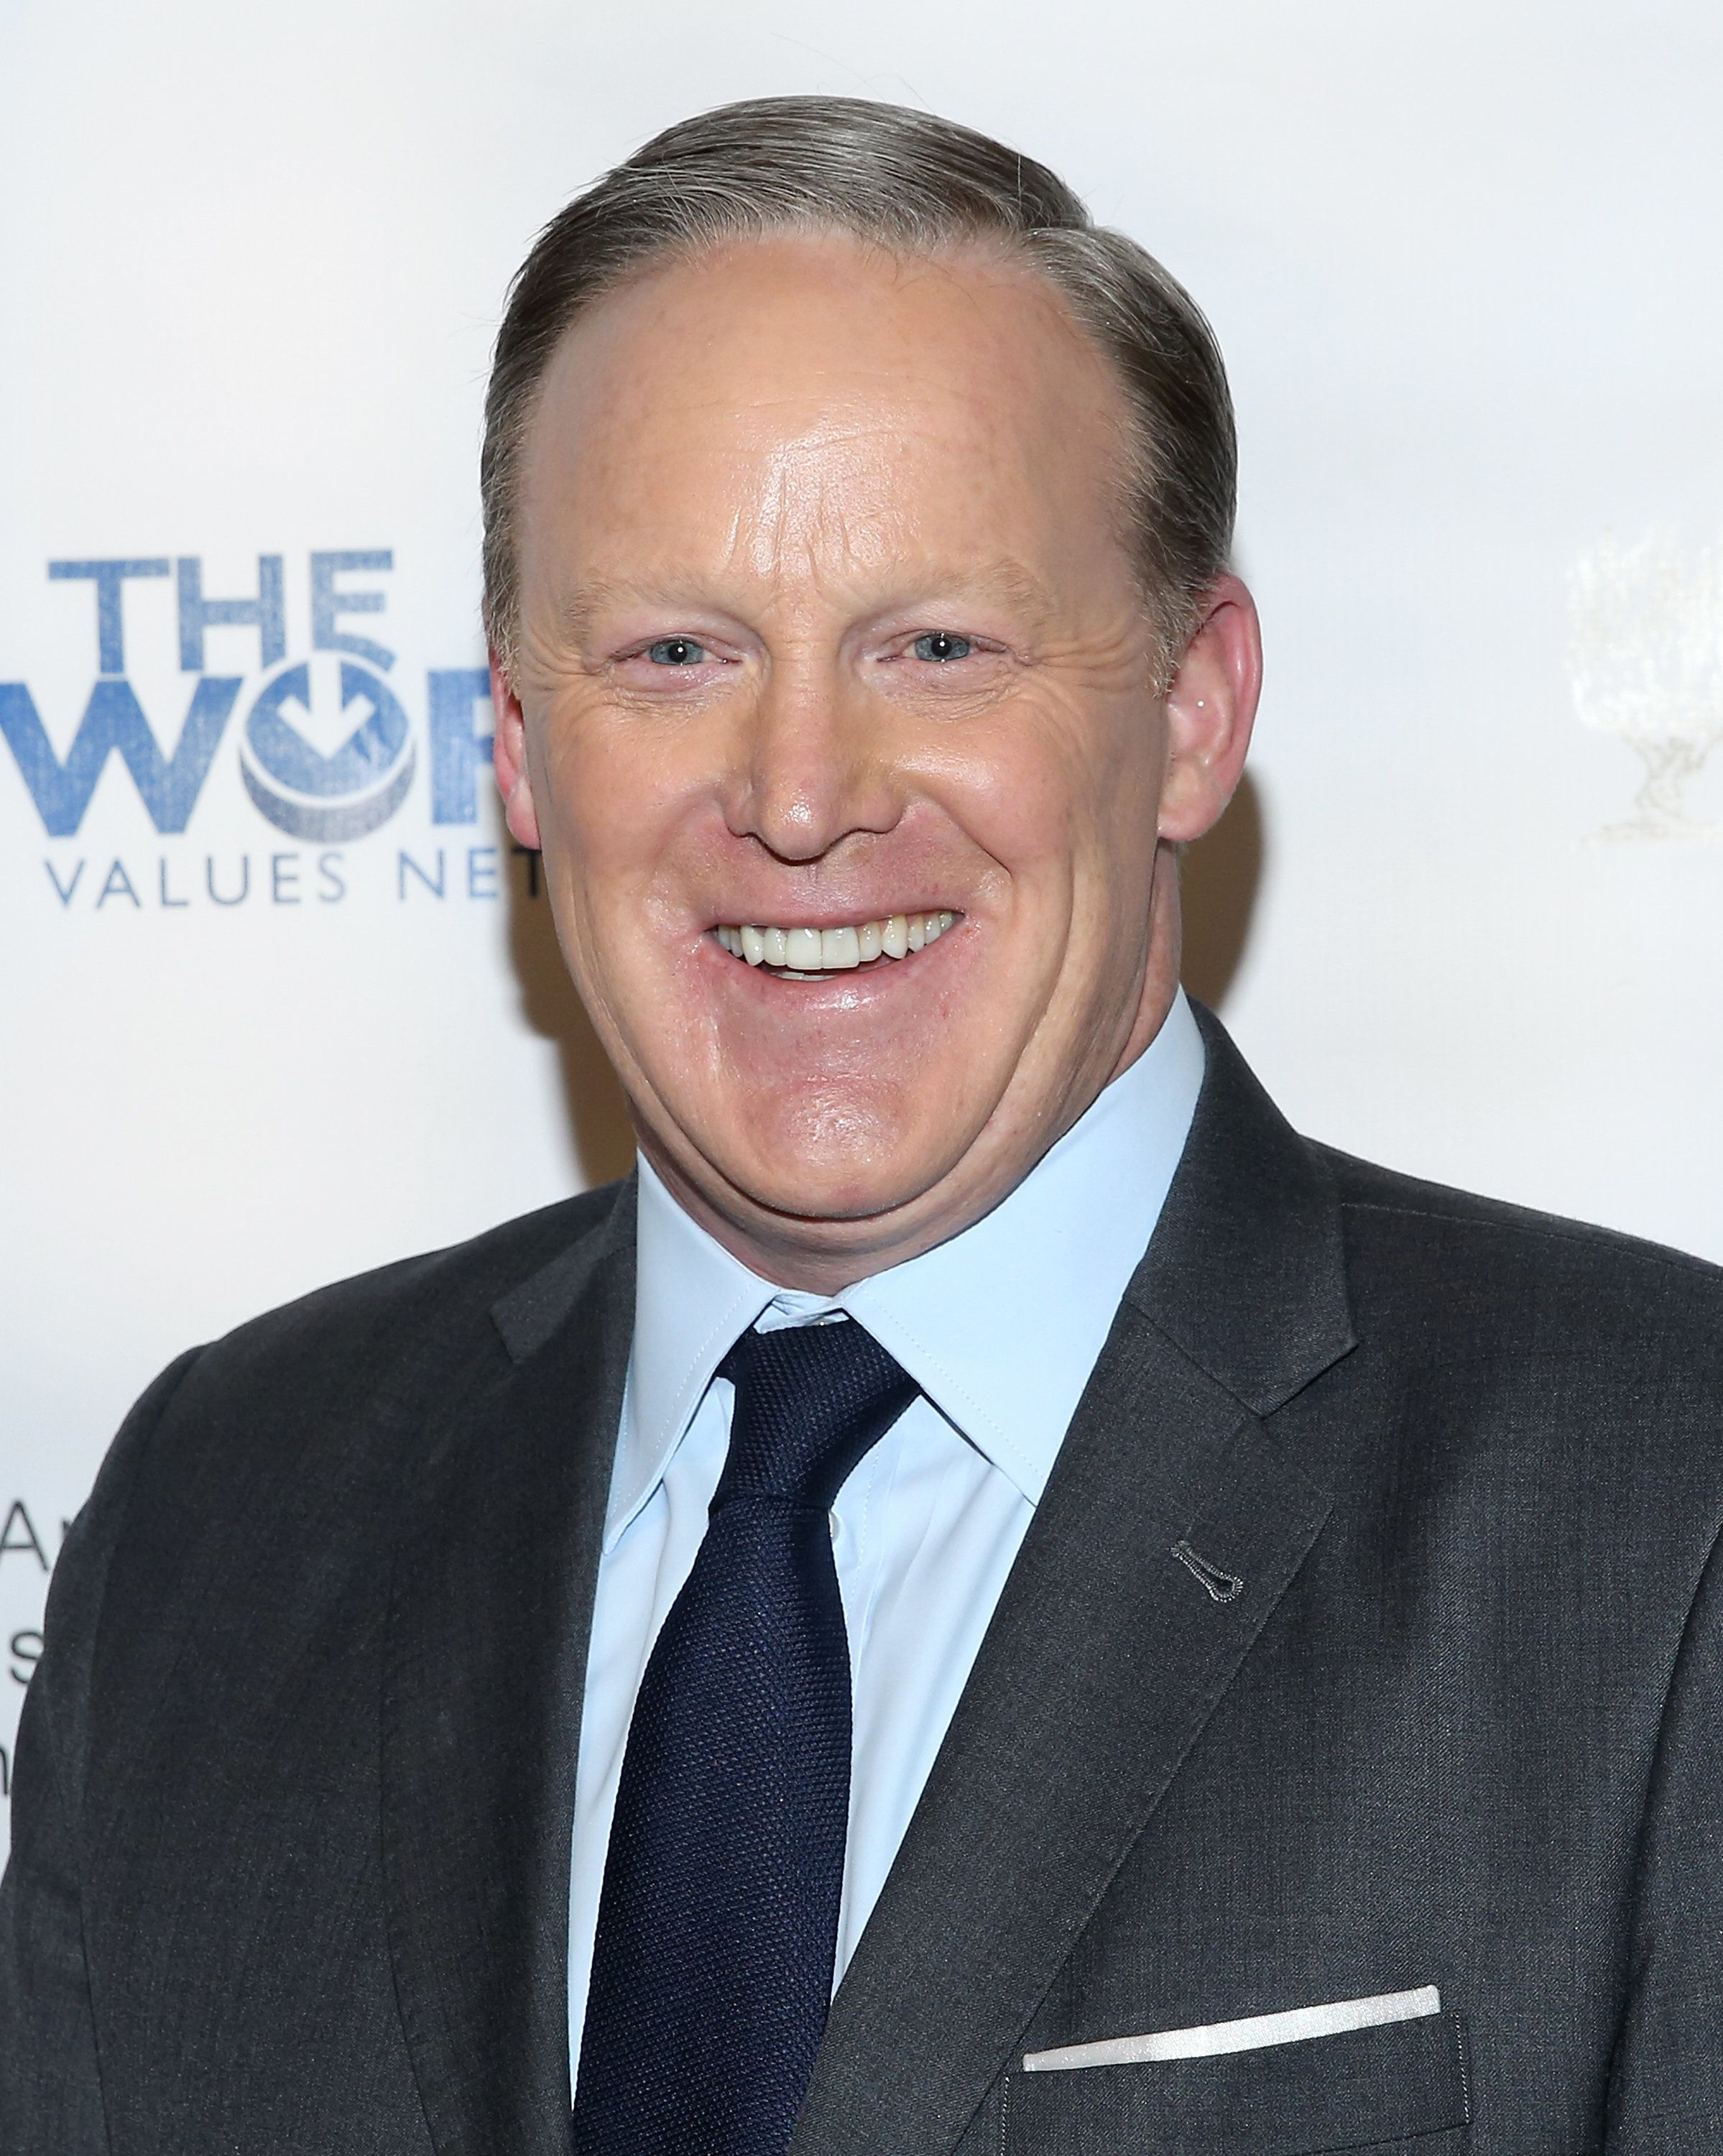 NEW YORK, NY - MARCH 08:  Former White House Press Secretary Sean Spicer attends the 2018 World Values Network Champions of Jewish Values Awards Gala at The Plaza Hotel on March 8, 2018 in New York City.  (Photo by Monica Schipper/Getty Images)